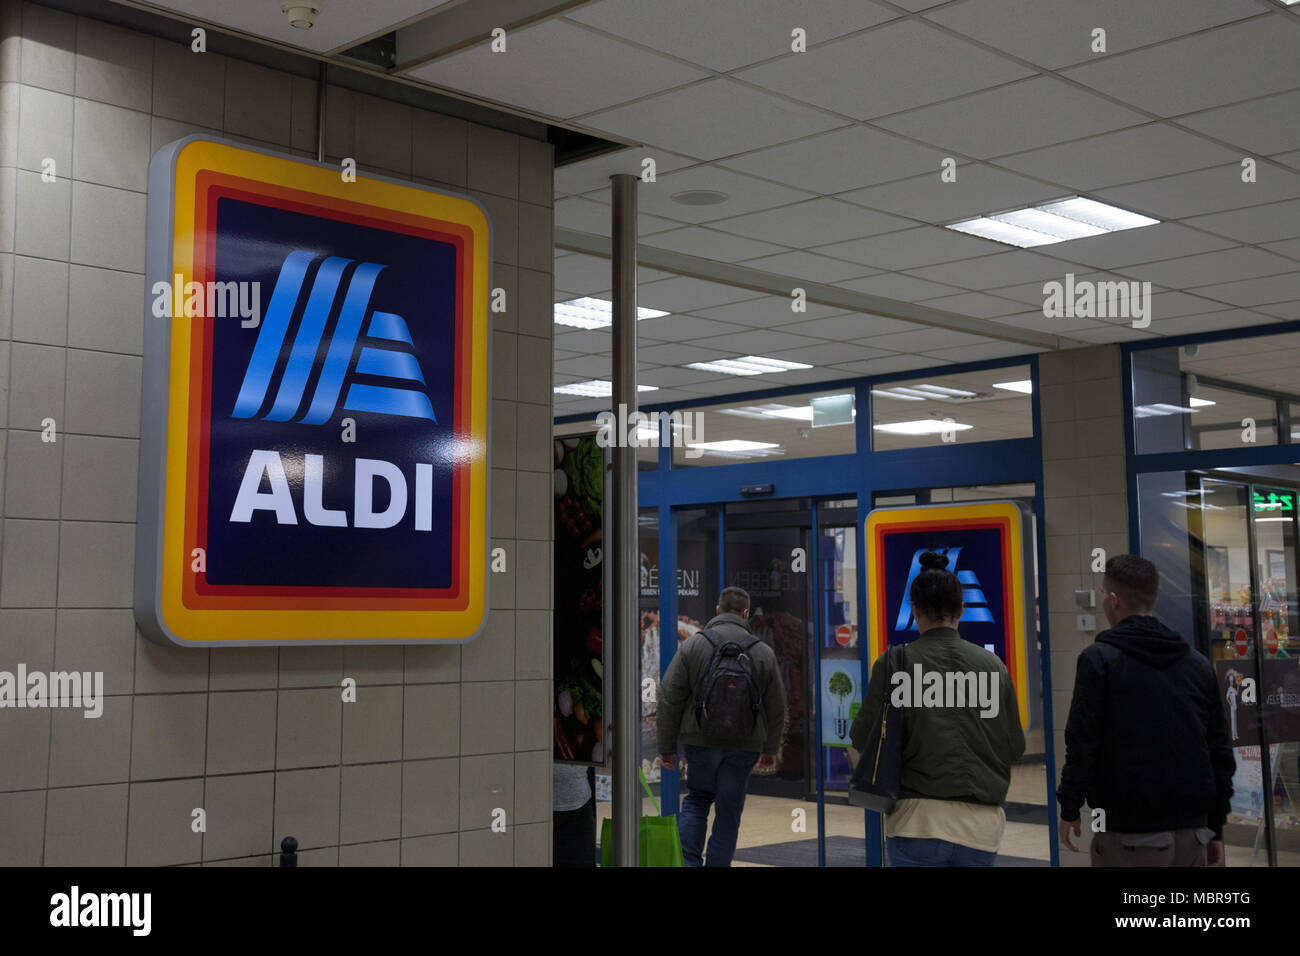 BUDAPEST, HUNGARY - APRIL 7, 2018: Aldi logo on one of their shops for Hungary. Aldi is a German Discount Supermarket chain developped worldwide  Pict - Stock Image